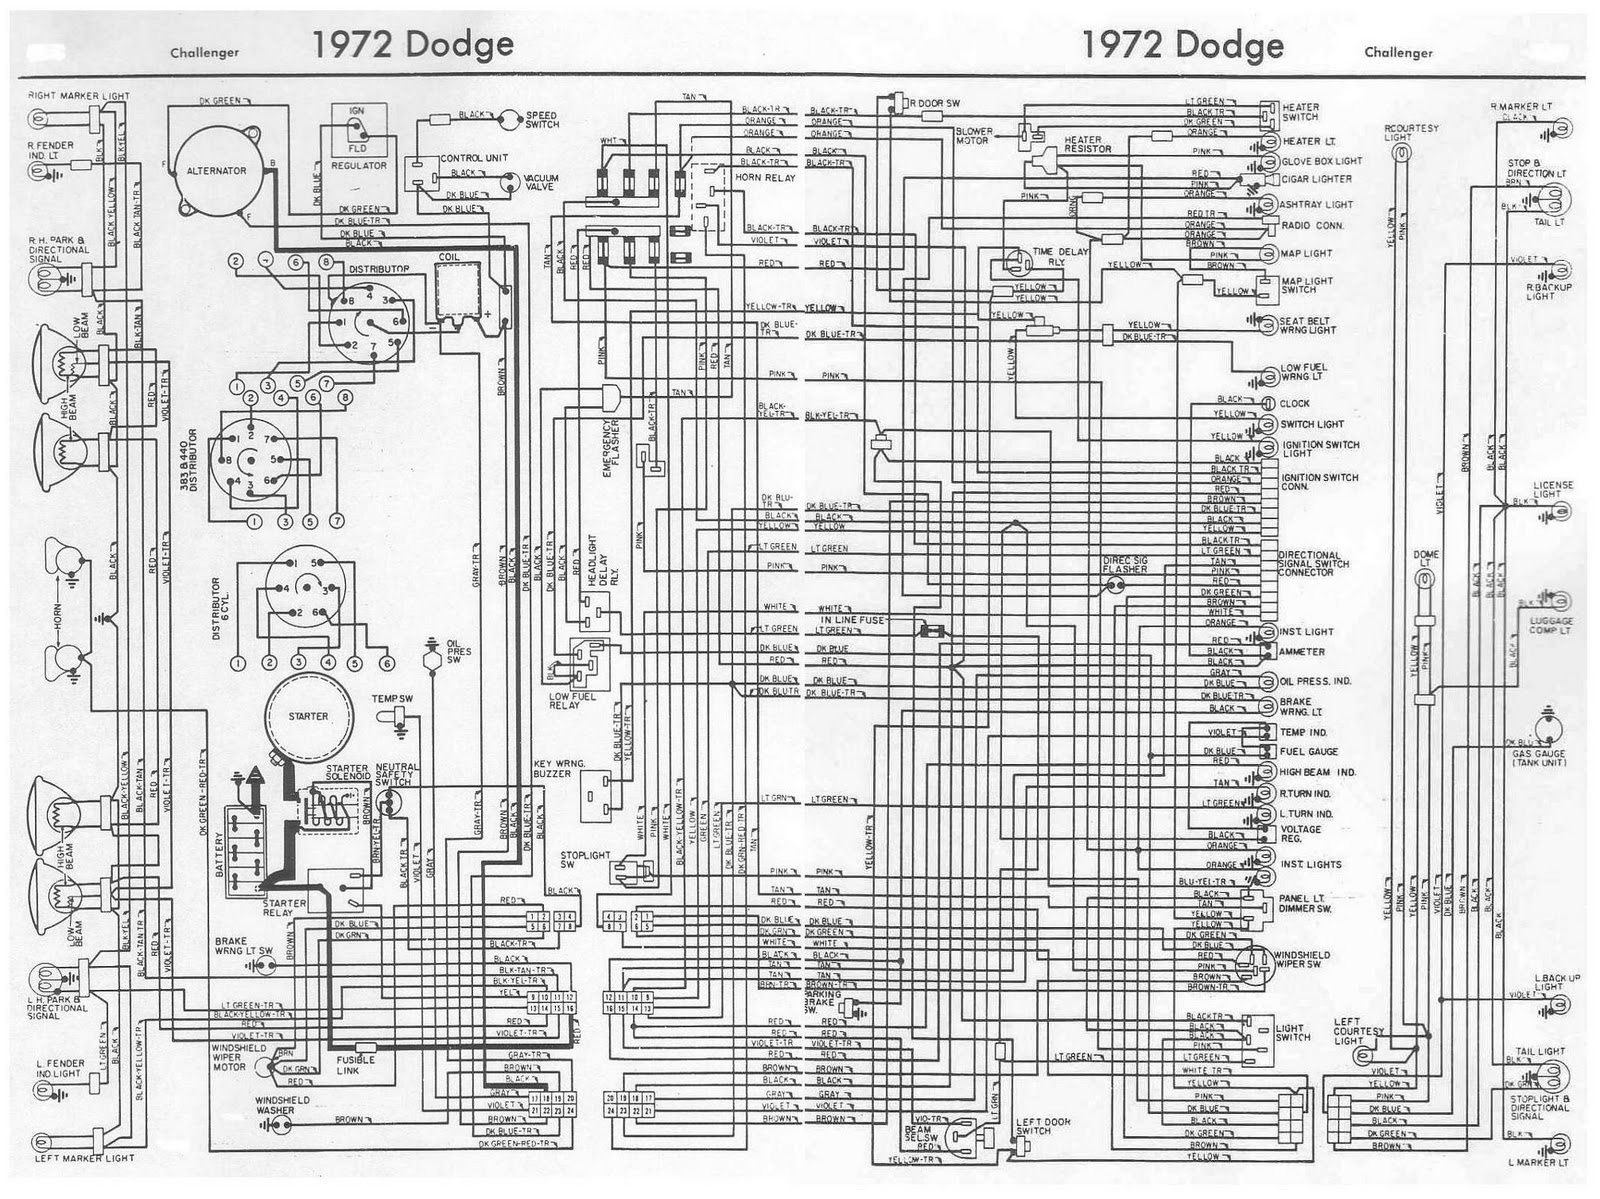 medium resolution of wireing diagram 2012 dodge challenger 37 wiring diagram 2012 dodge charger radio wiring diagram 2012 dodge charger pursuit wiring diagram